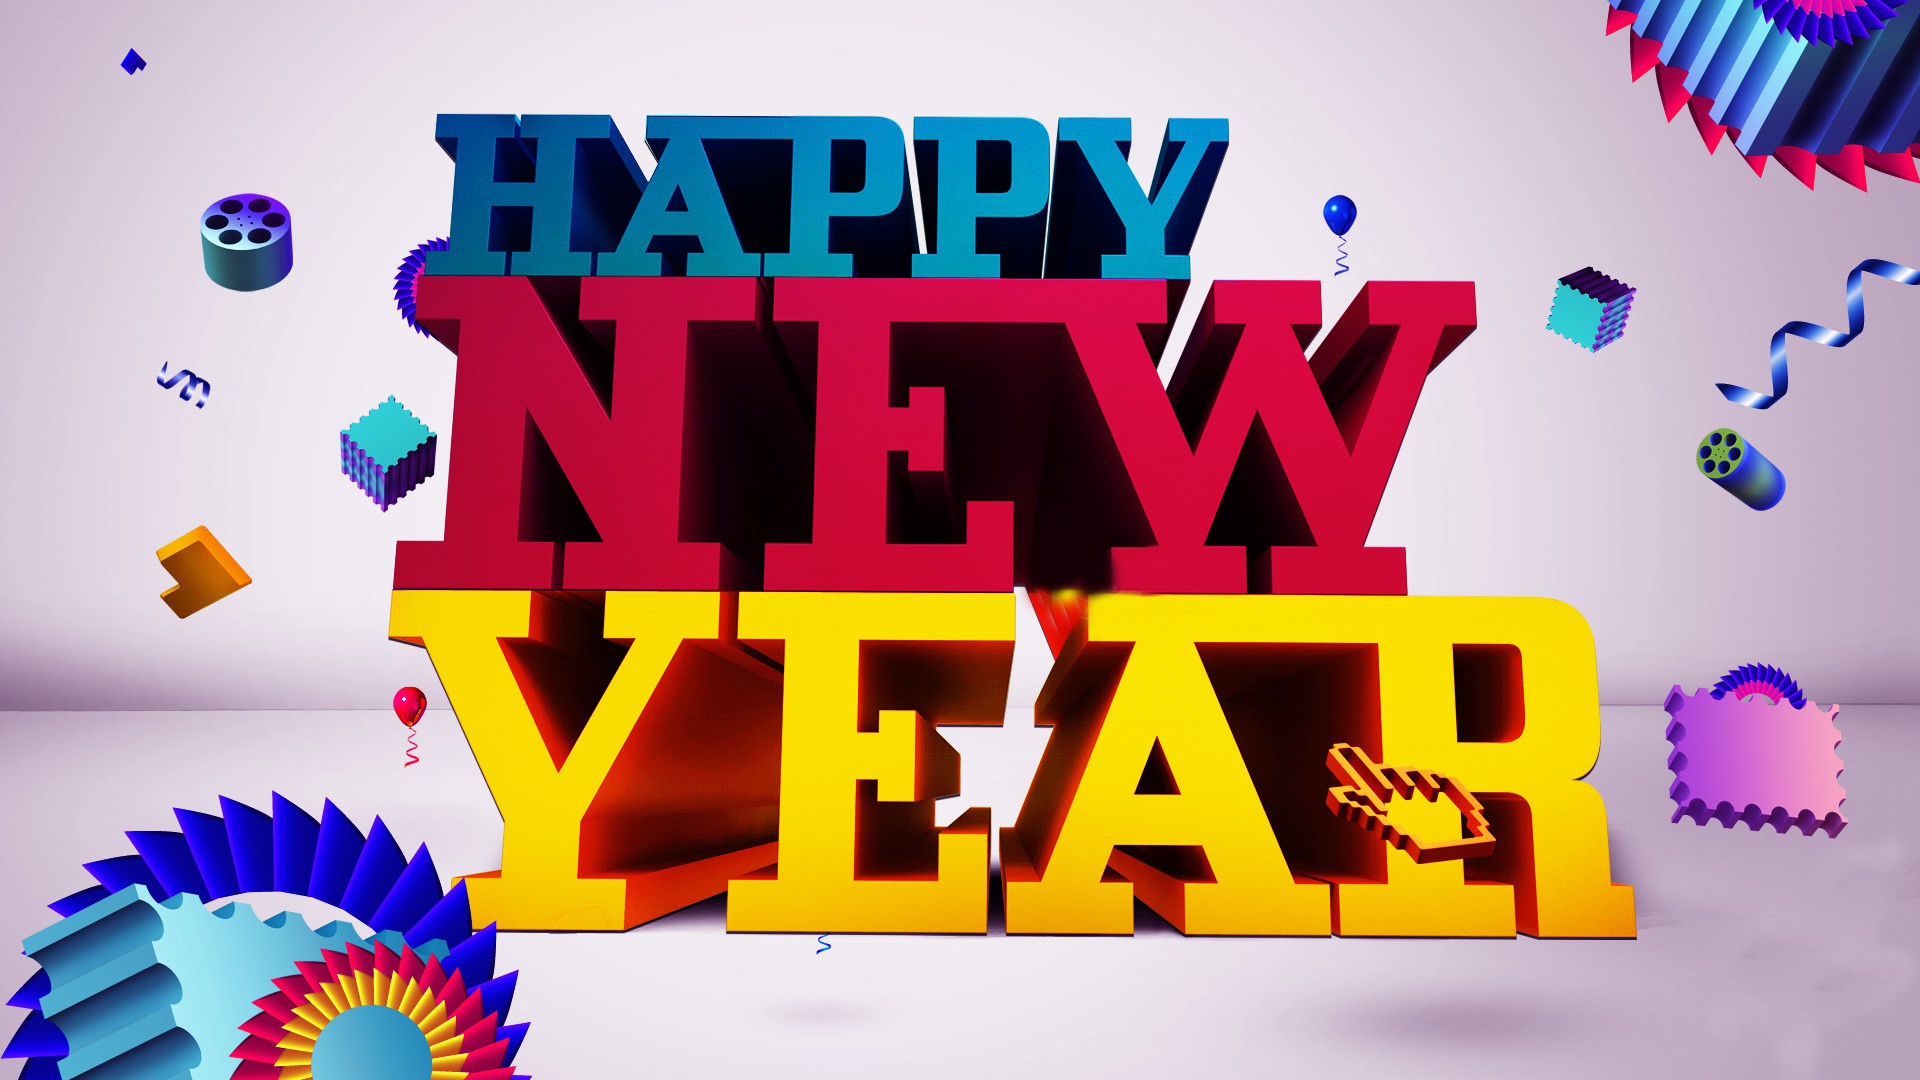 Free Happy New Year Hd 2016 - Happy New Year 2015 Wallpaper Free Download 2017 , HD Wallpaper & Backgrounds